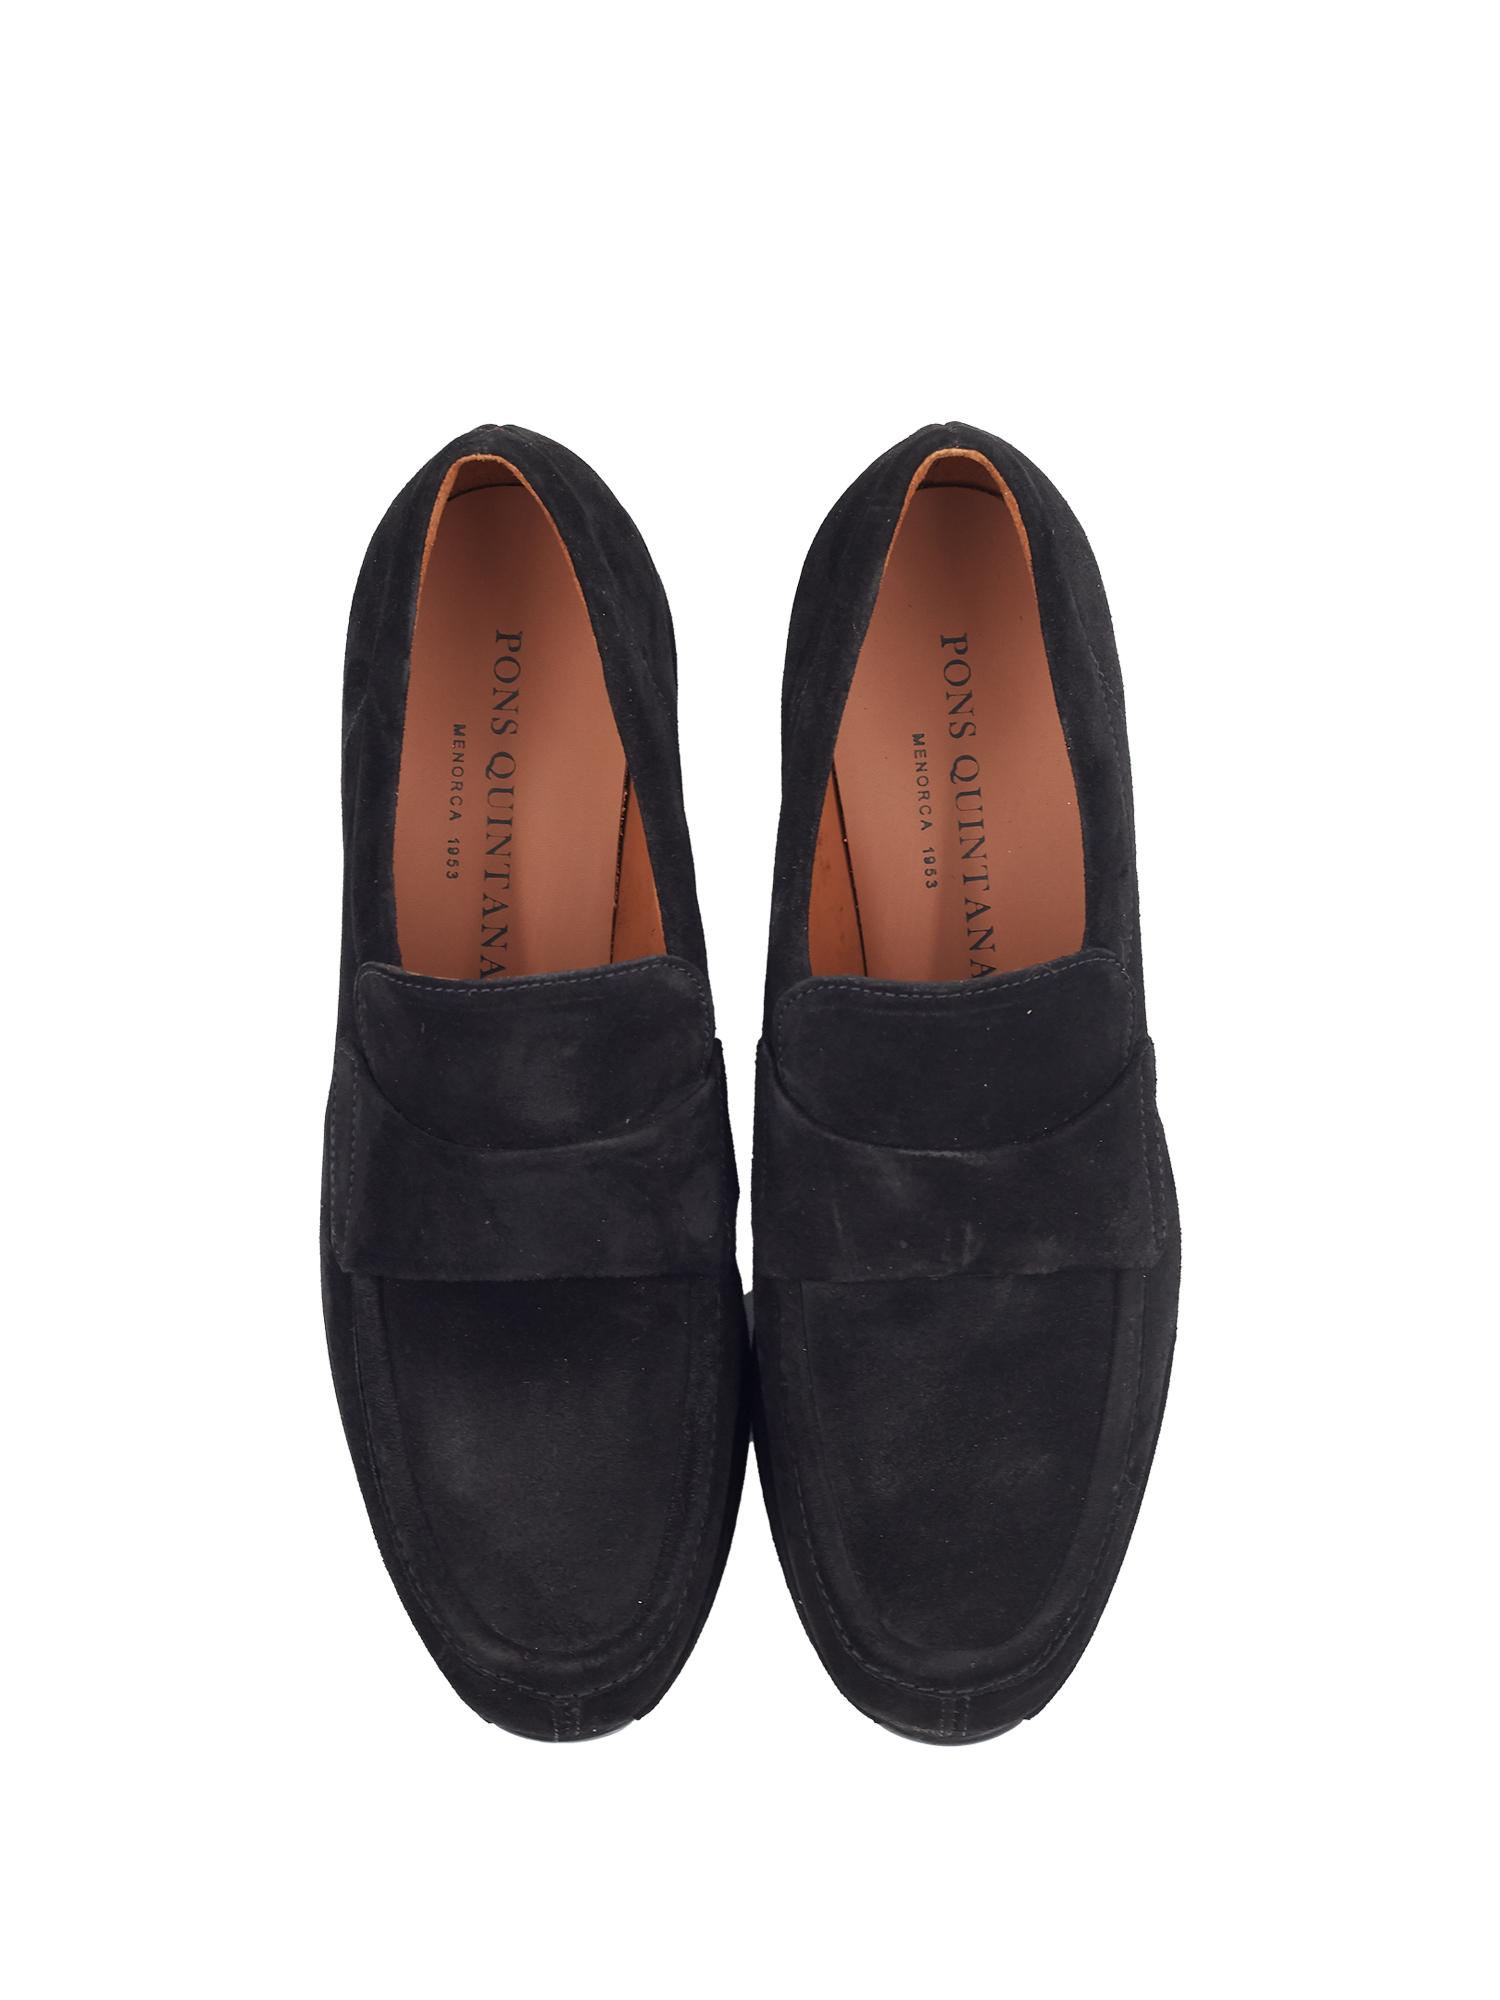 CARTIER BLACK VELOUR SLIP ON